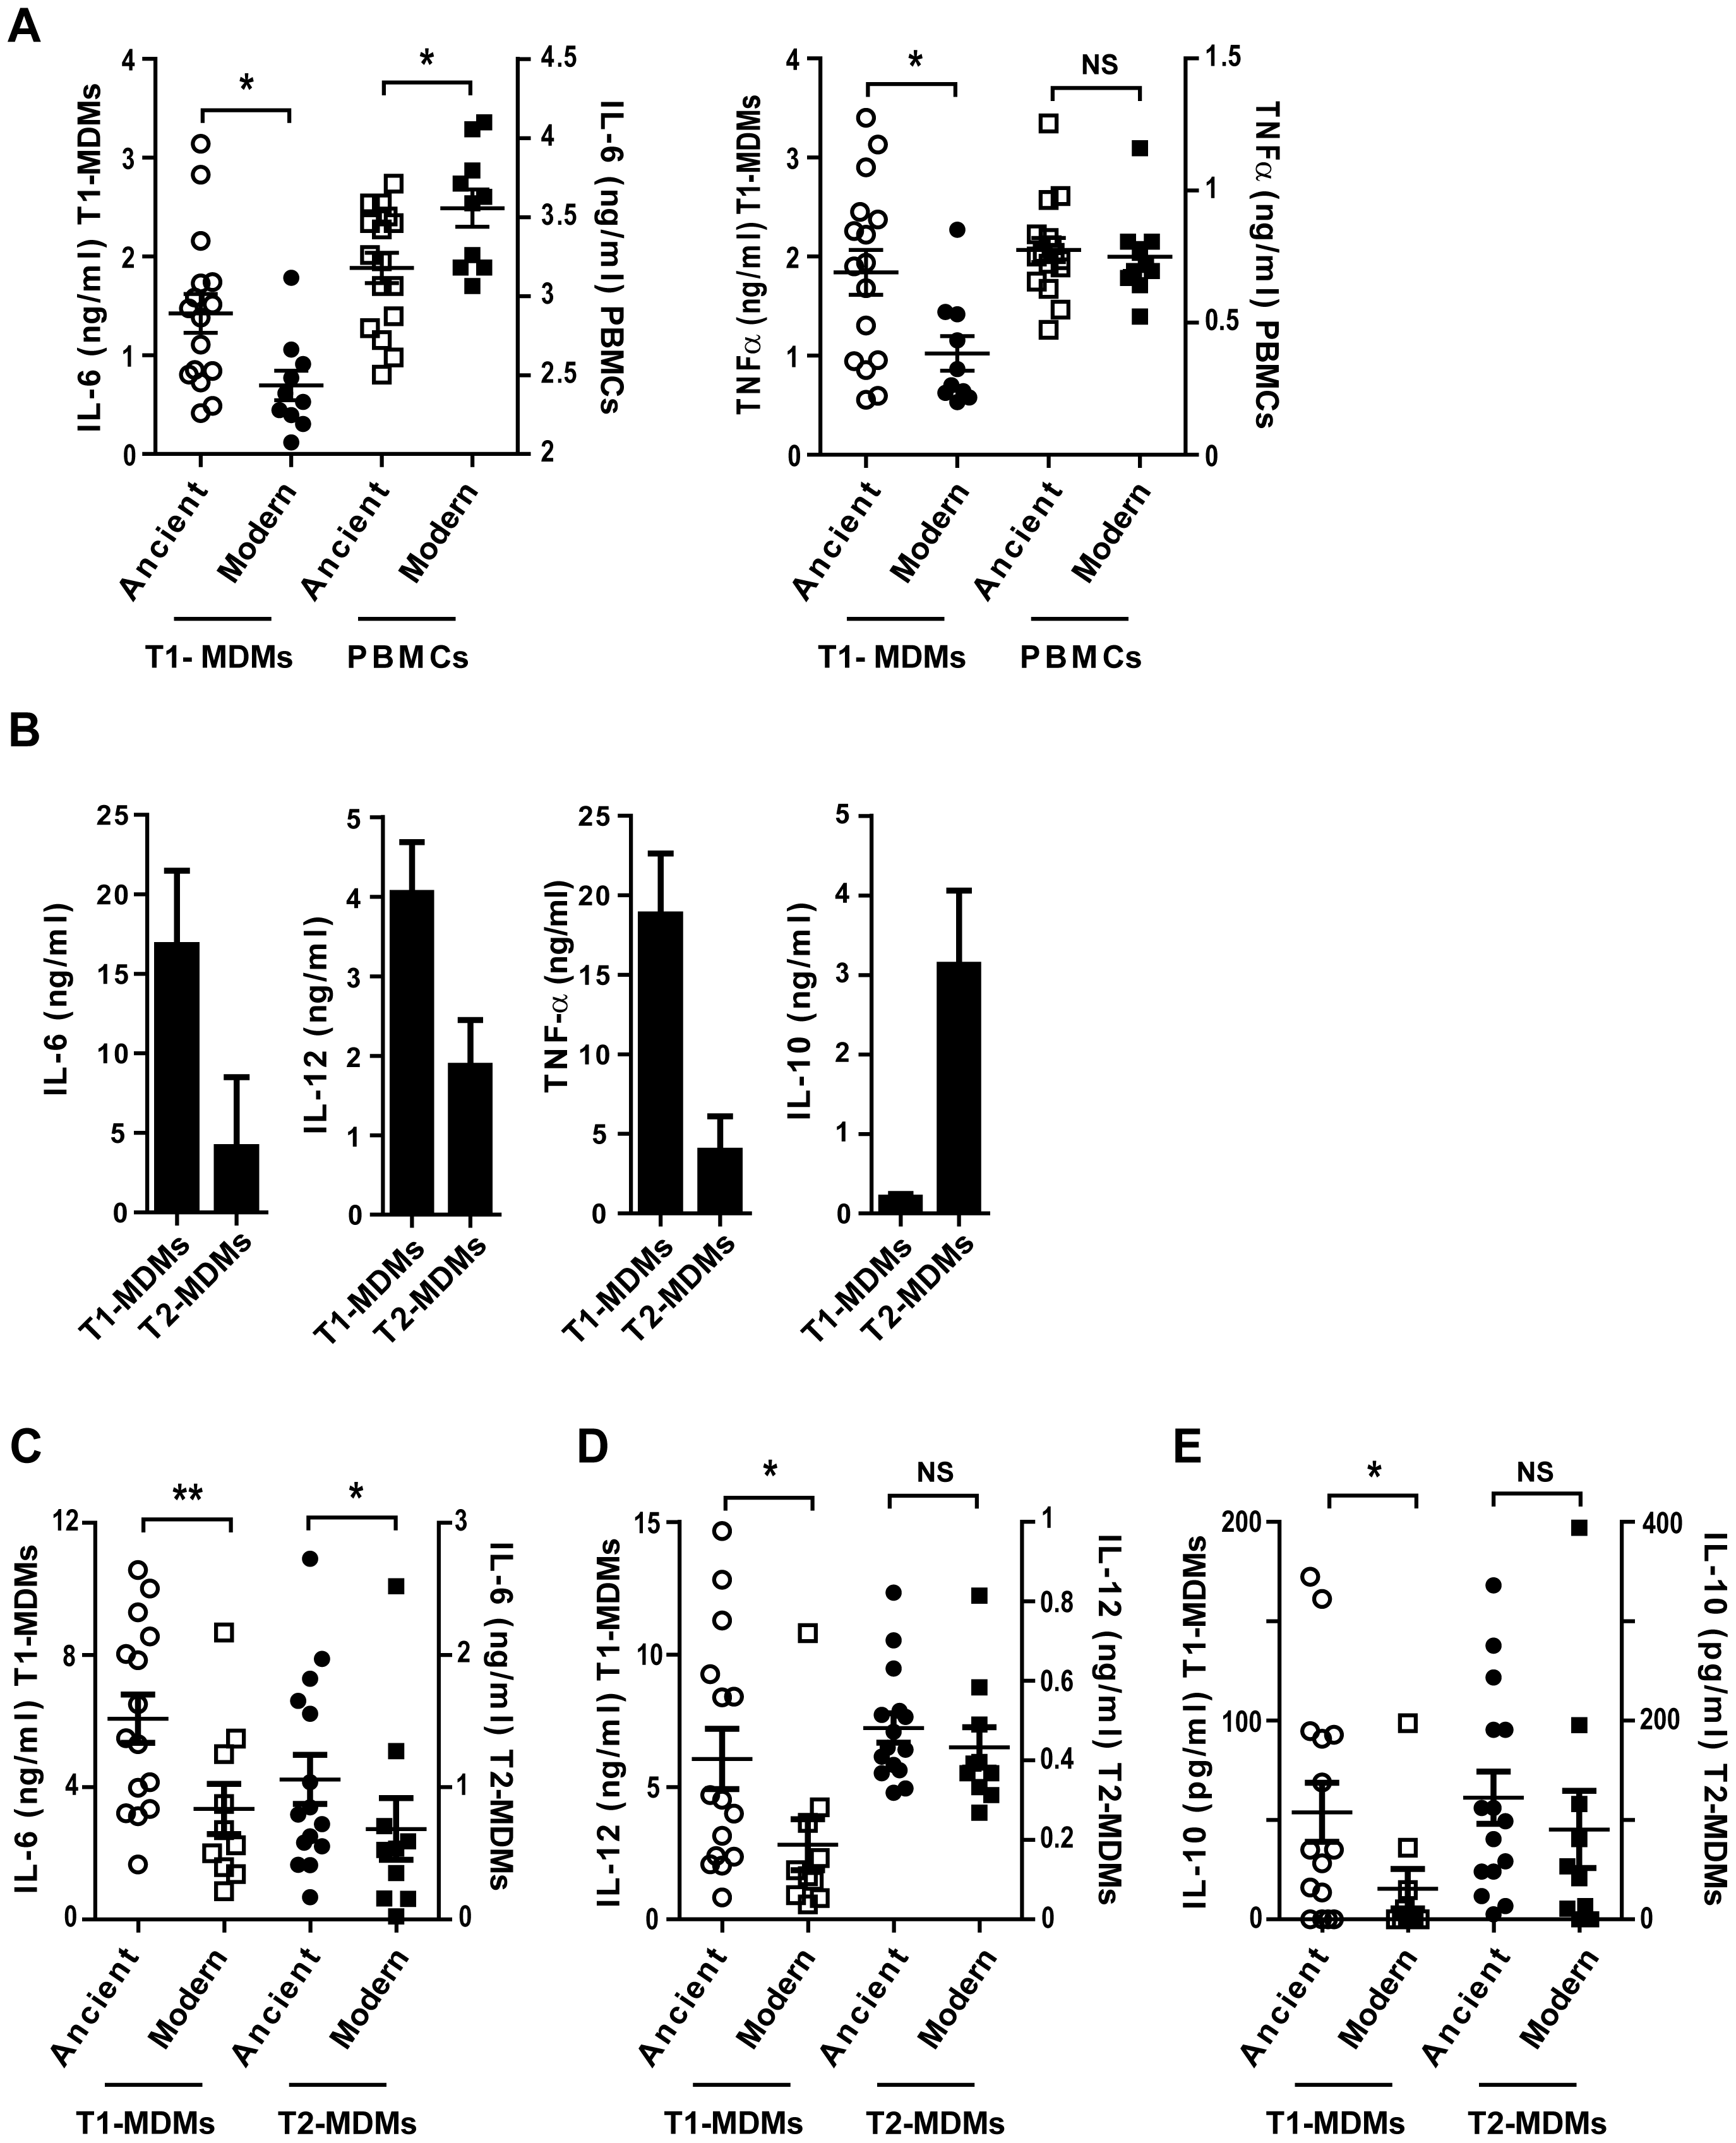 The inflammatory response to ancient and modern lineages differs when infecting autologous PBMCs or anti-inflammatory Type 2 macrophages.